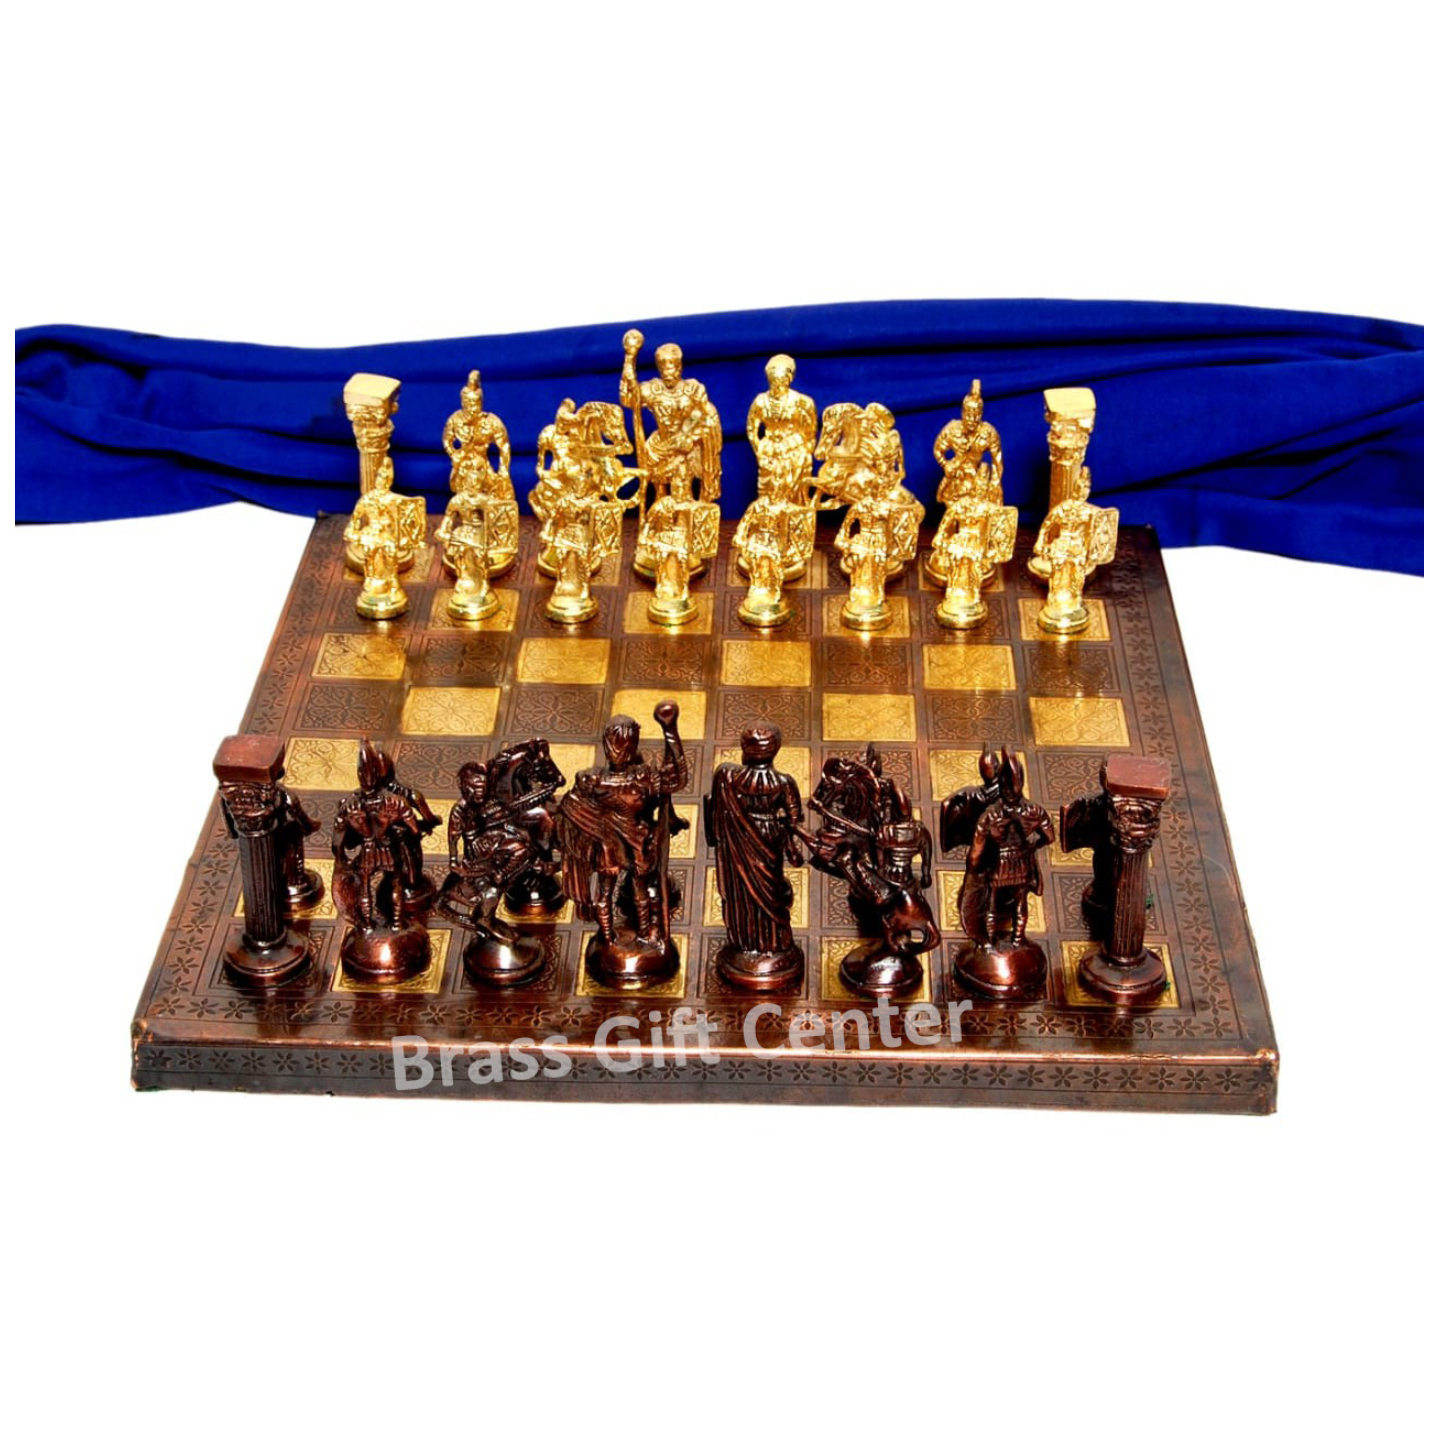 Brass Chess In Brass and Copper Finish - 1212 Inch  BS363 H